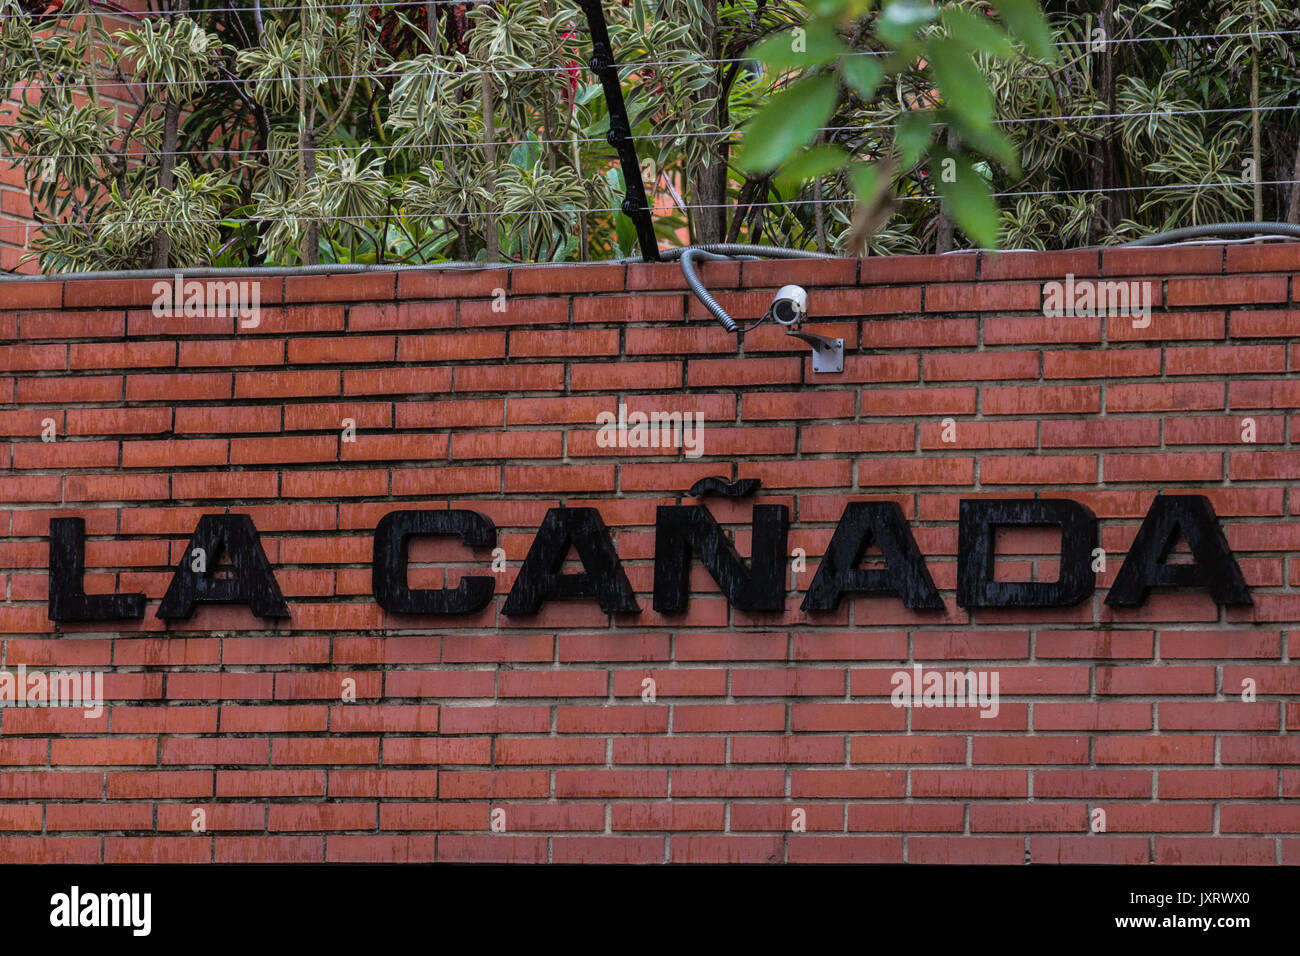 A view of La Canada building, residence of former Attorney General Luisa Ortega Diaz in Caracas, Venezuela, 16 August 2017. The Venezuelan Intelligence Service raid the house of Ortega hours after her successor Tarek William Saab demanded the incarceration of Ortega's husband German Ferrer, to whom the chavism accuses of leading an extorsion network. EFE/Cristian Hernandez - Stock Image